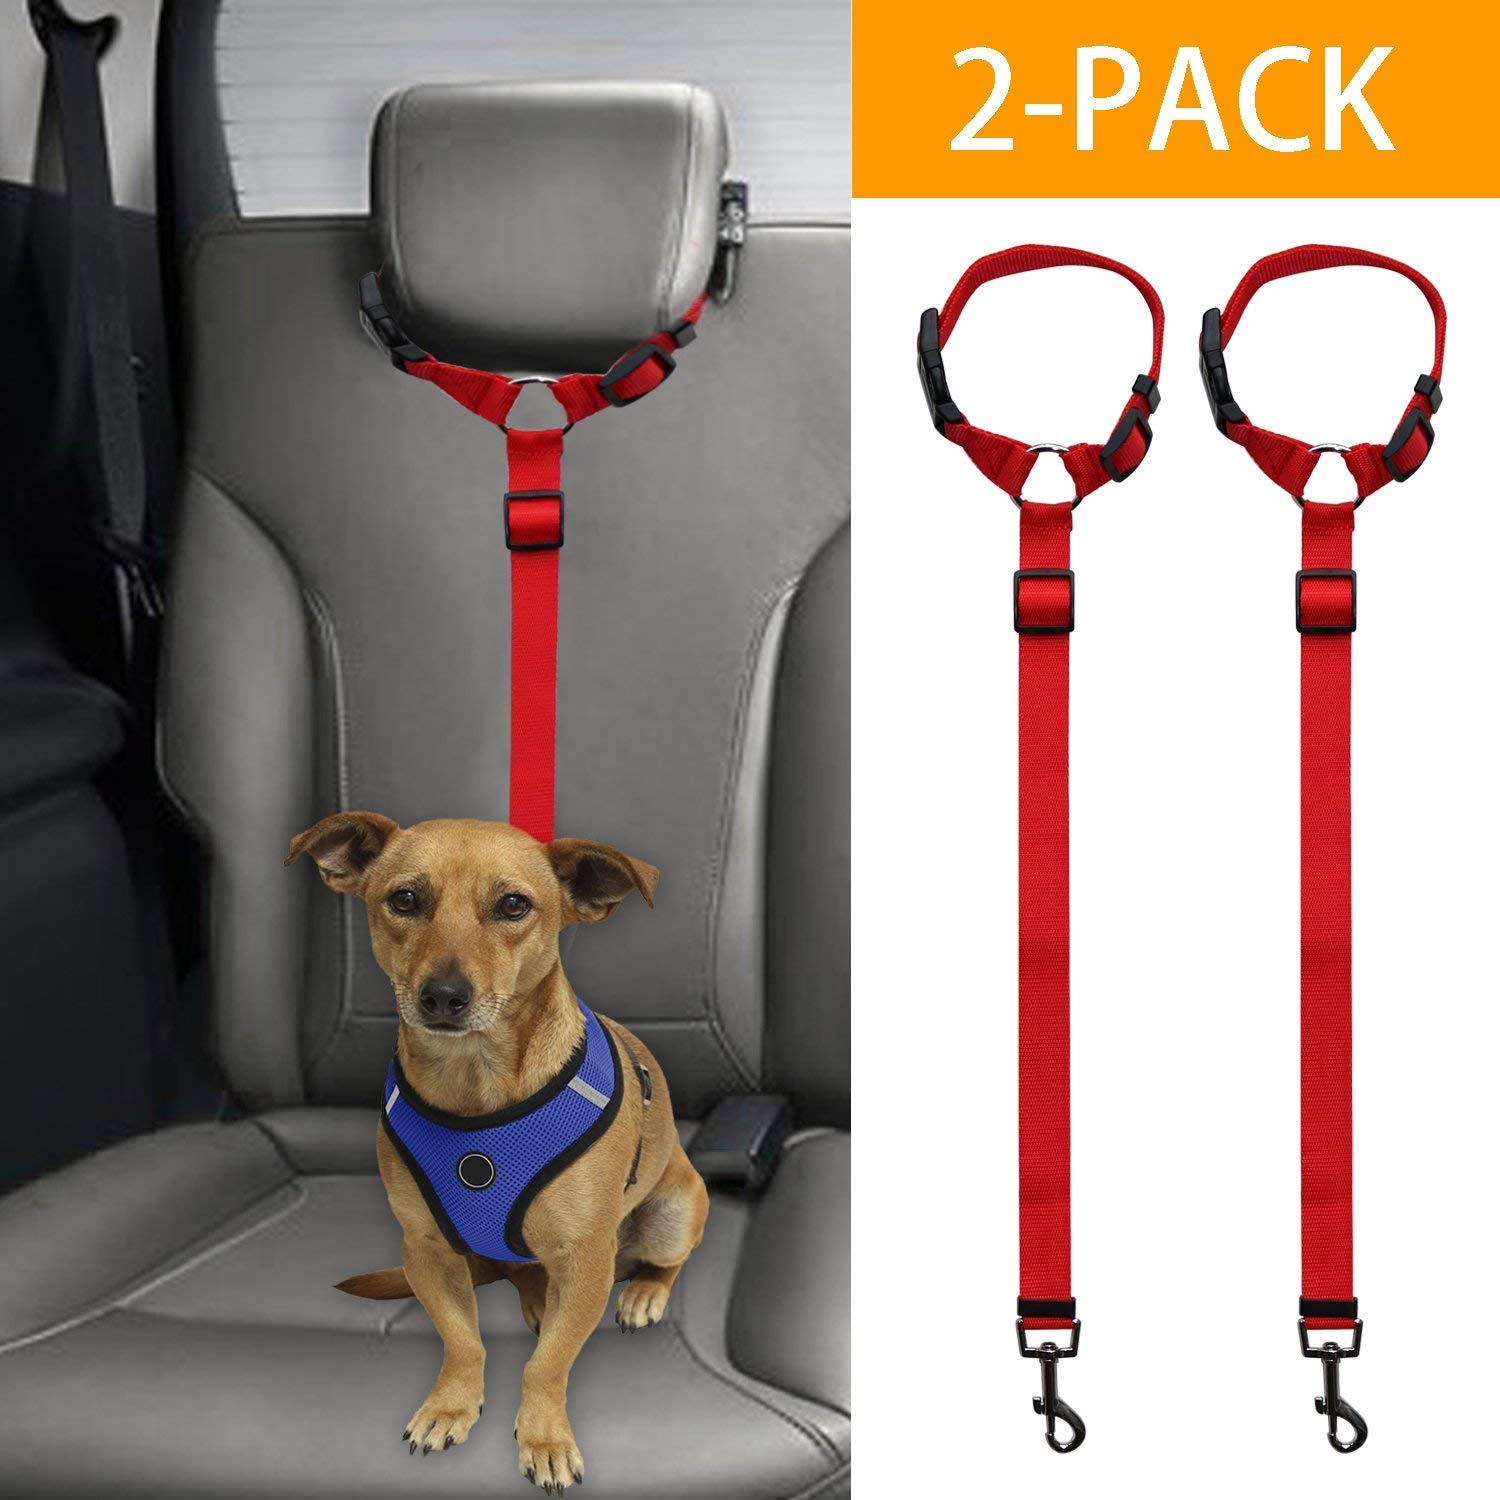 Pink-1Pack Docamor Adjustable Dog Seat Belt Dog Harness Pet Car Vehicle Seat Belt Pet Safety Leash Leads Dogs//Cats Adjustable From 18 To 30 Inch Nylon Fabric Material Carnation